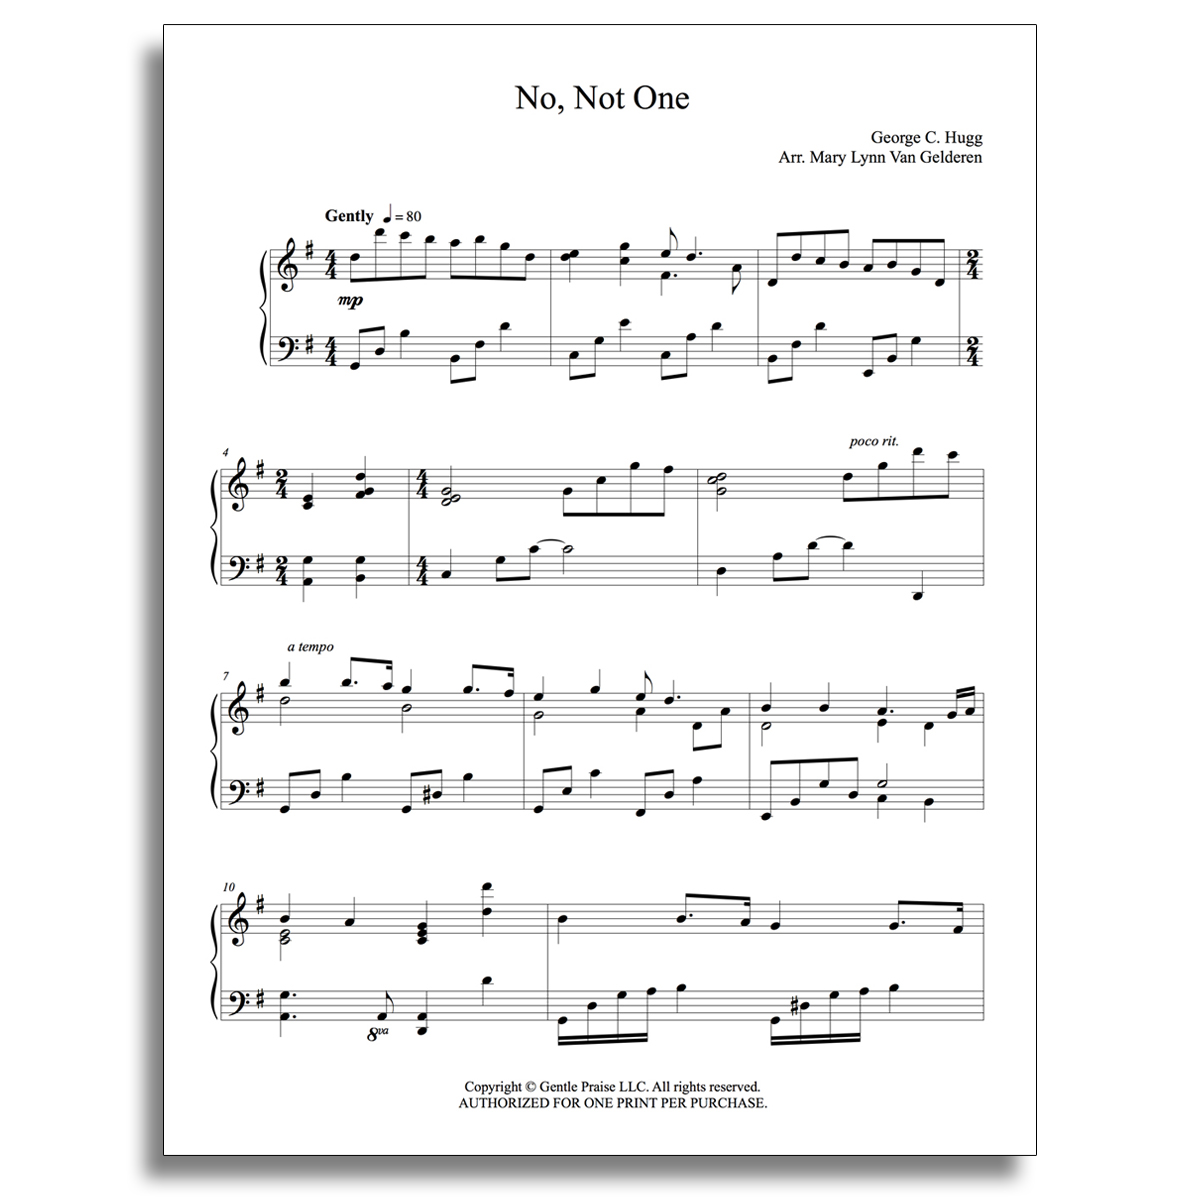 No, Not One Piano Sheet Music